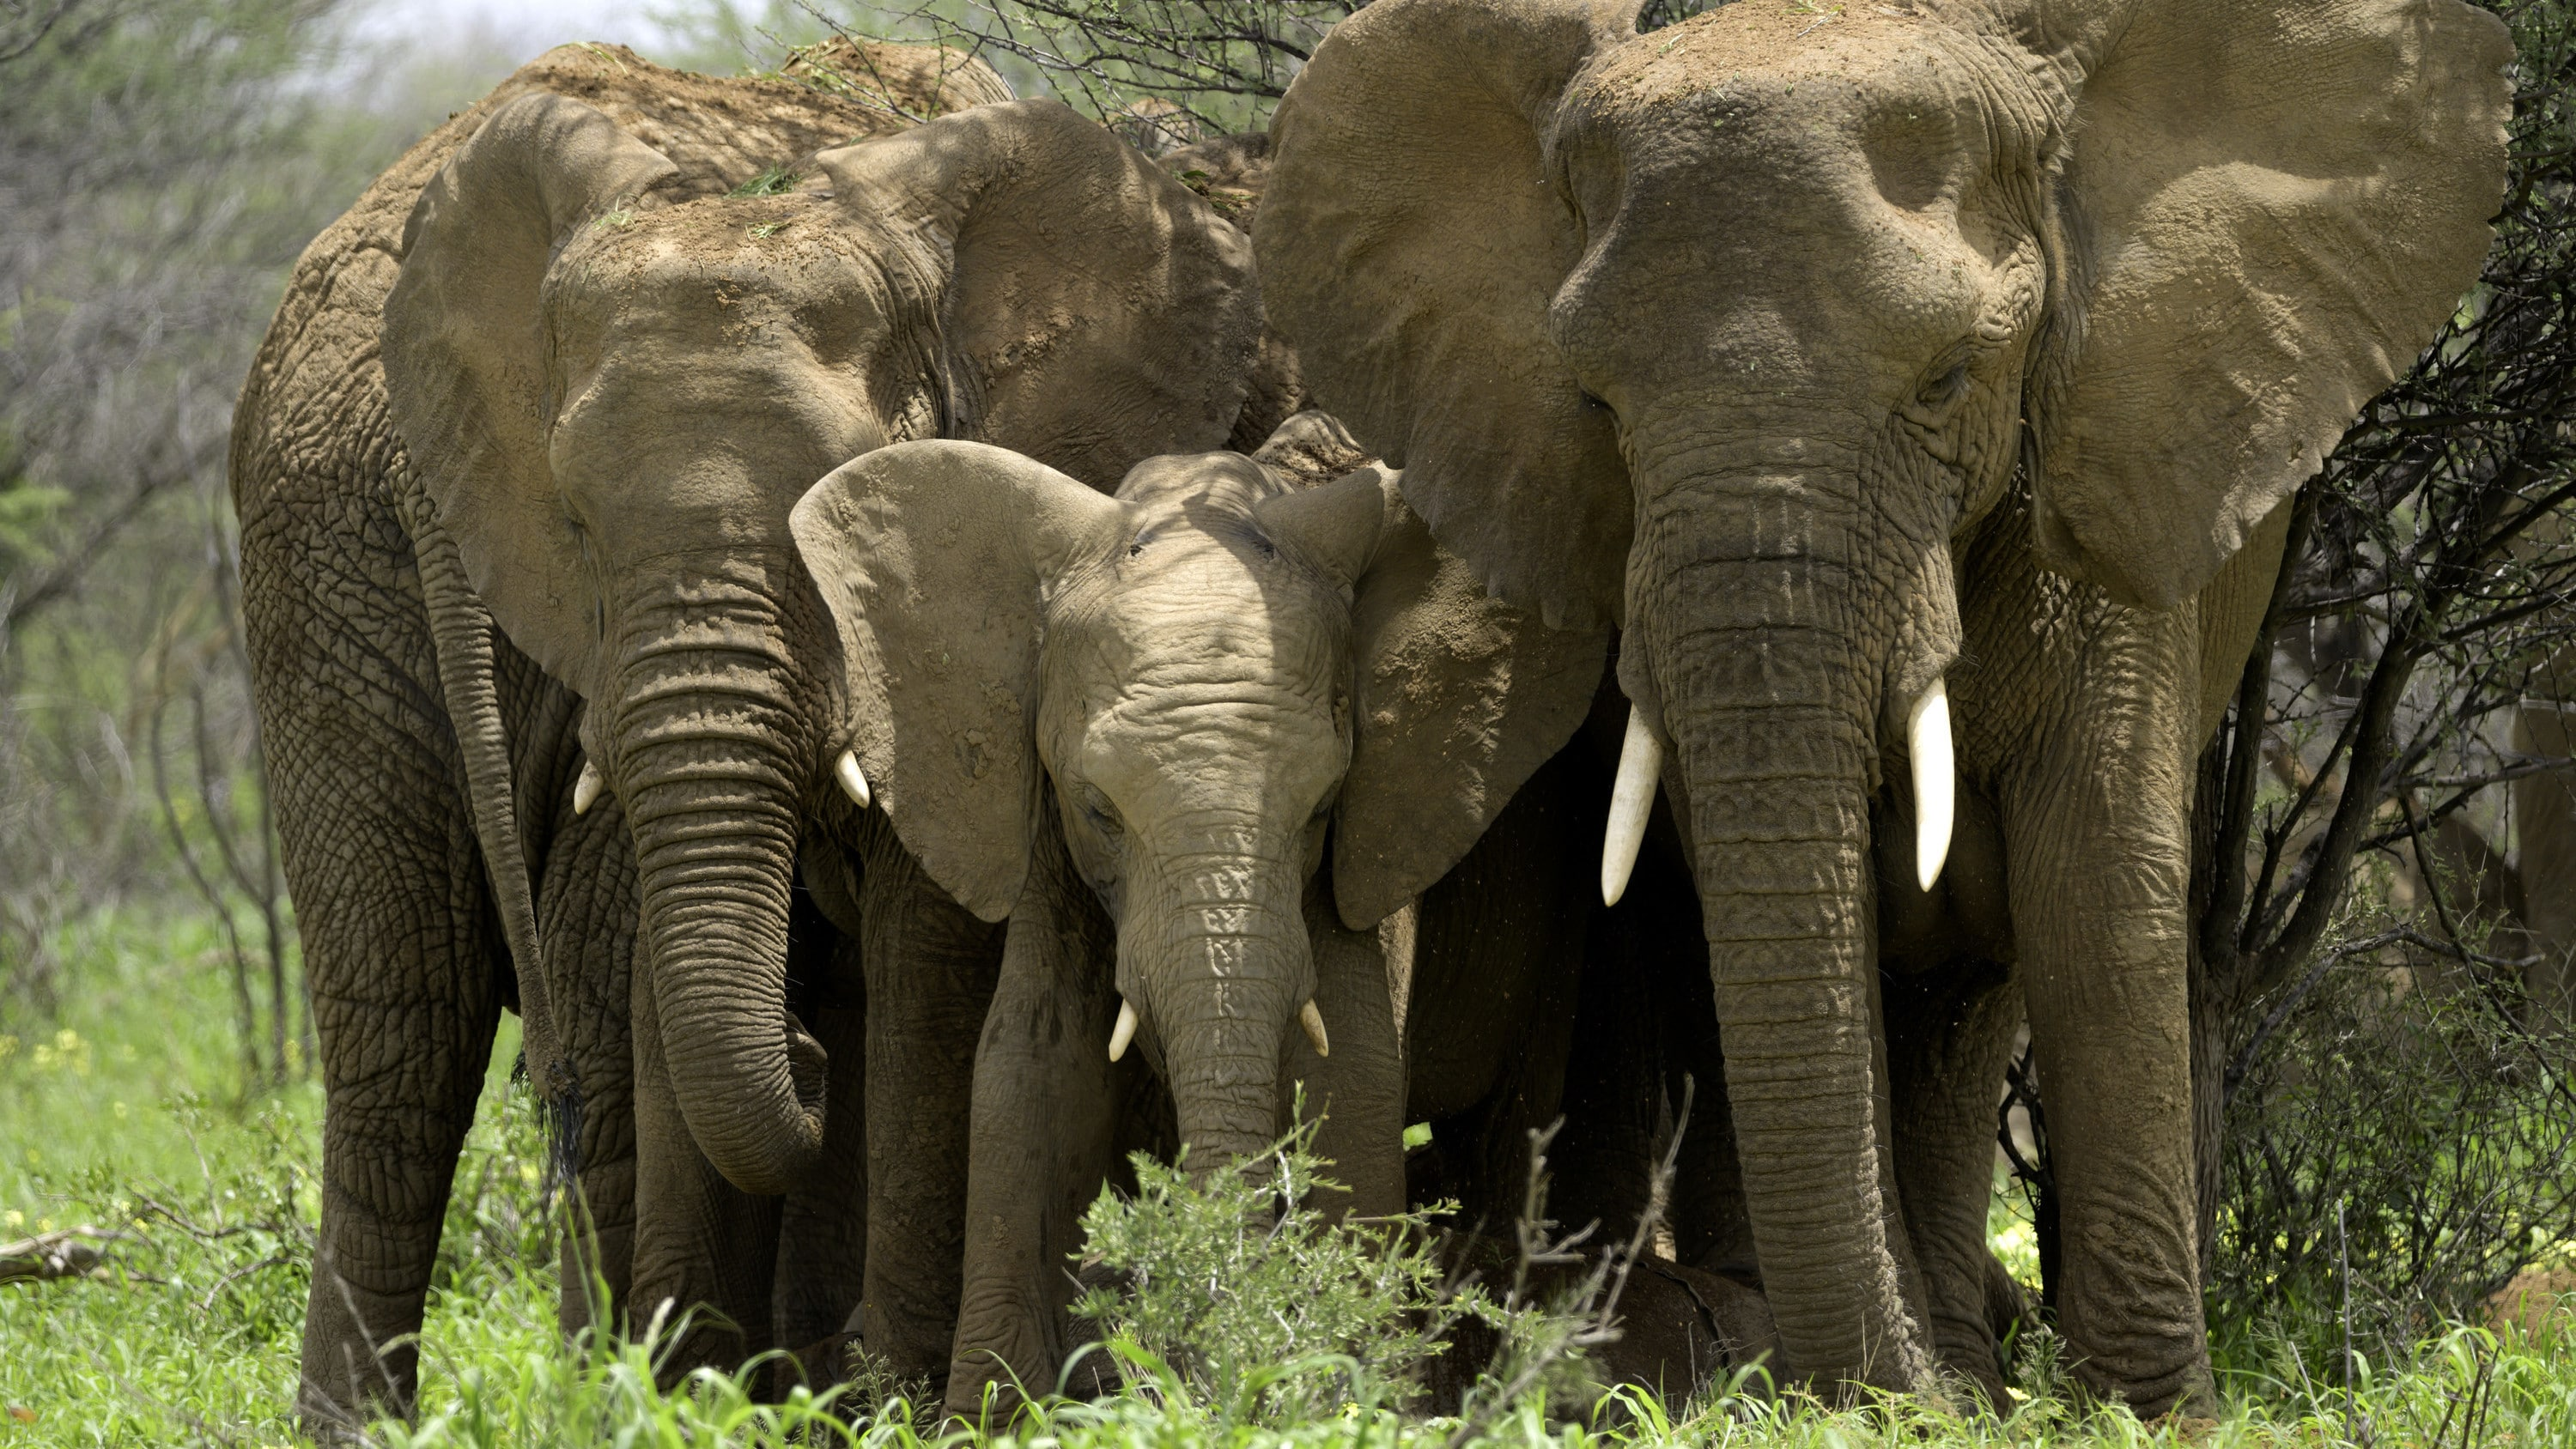 The elephant herd rests in the trees. (National Geographic for Disney+/Melanie Gerry)